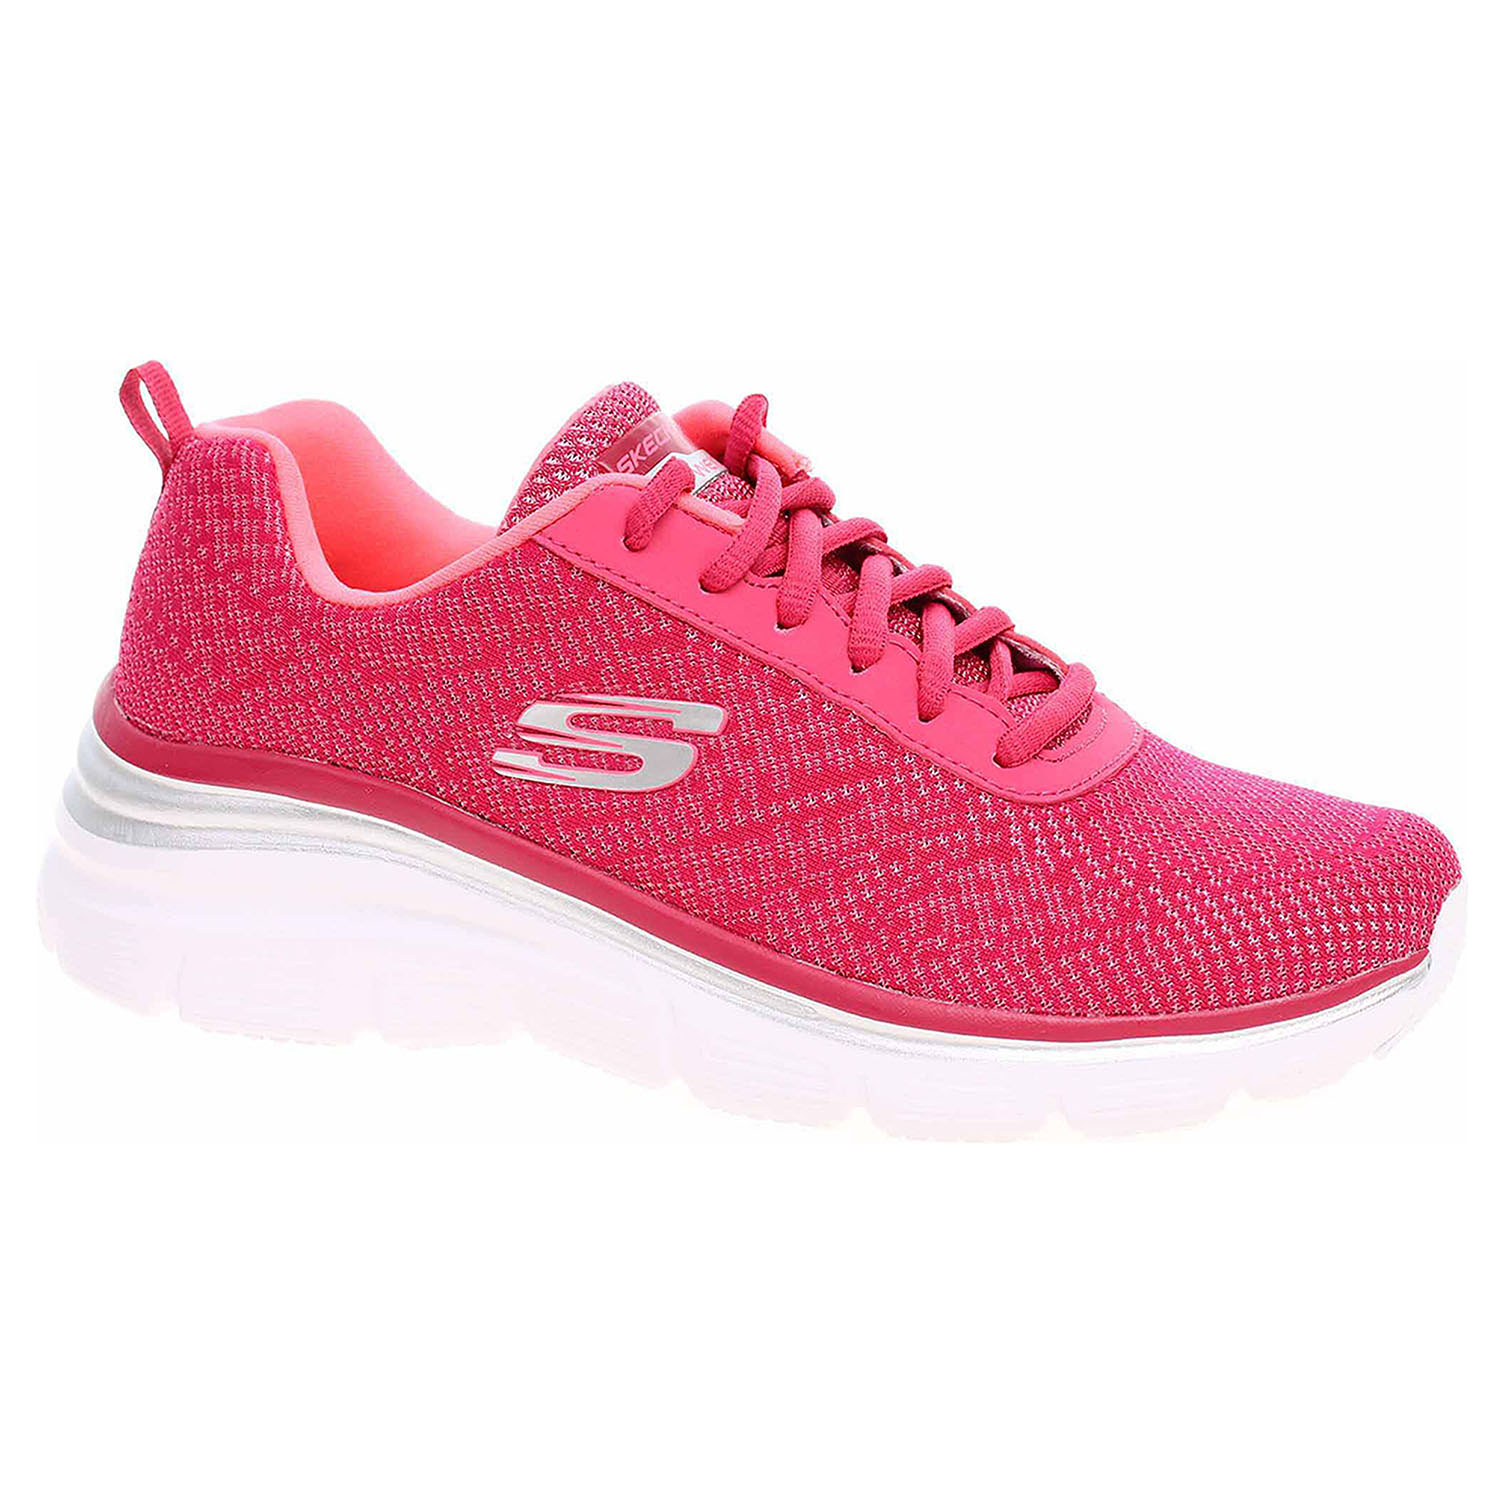 Skechers Fashion Fit - Bold Boundaries raspberry